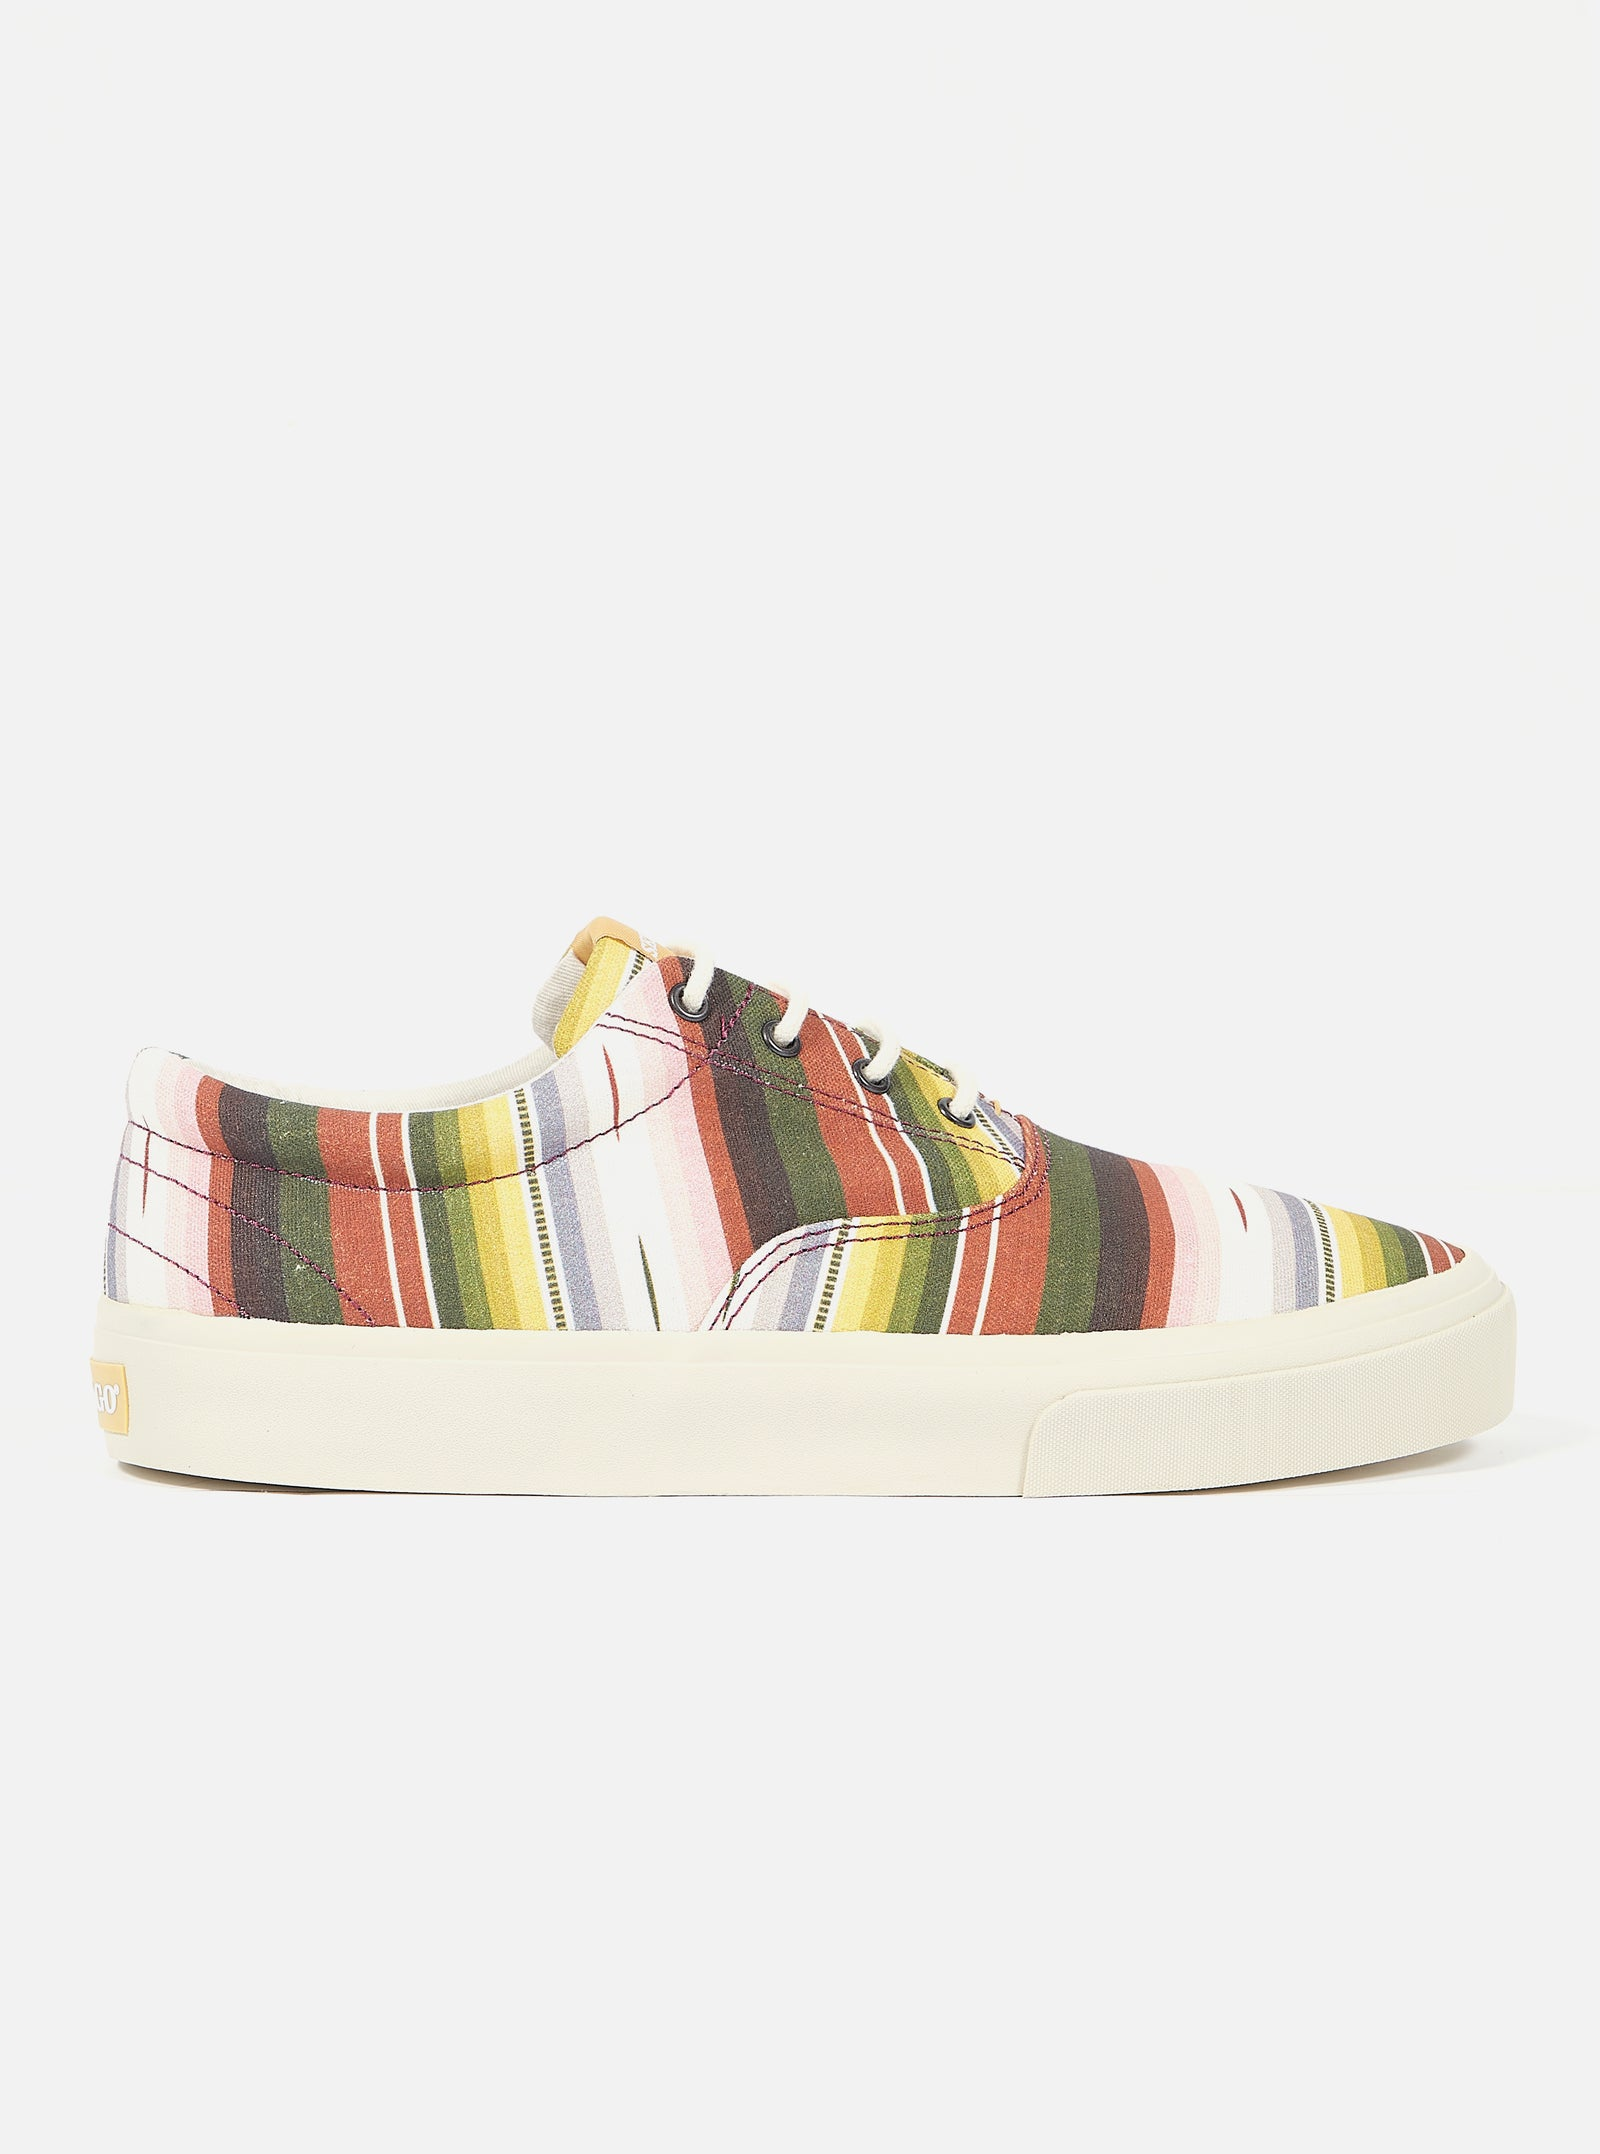 Universal Works x Sebago John in Mex Blanket/Multi Stripe